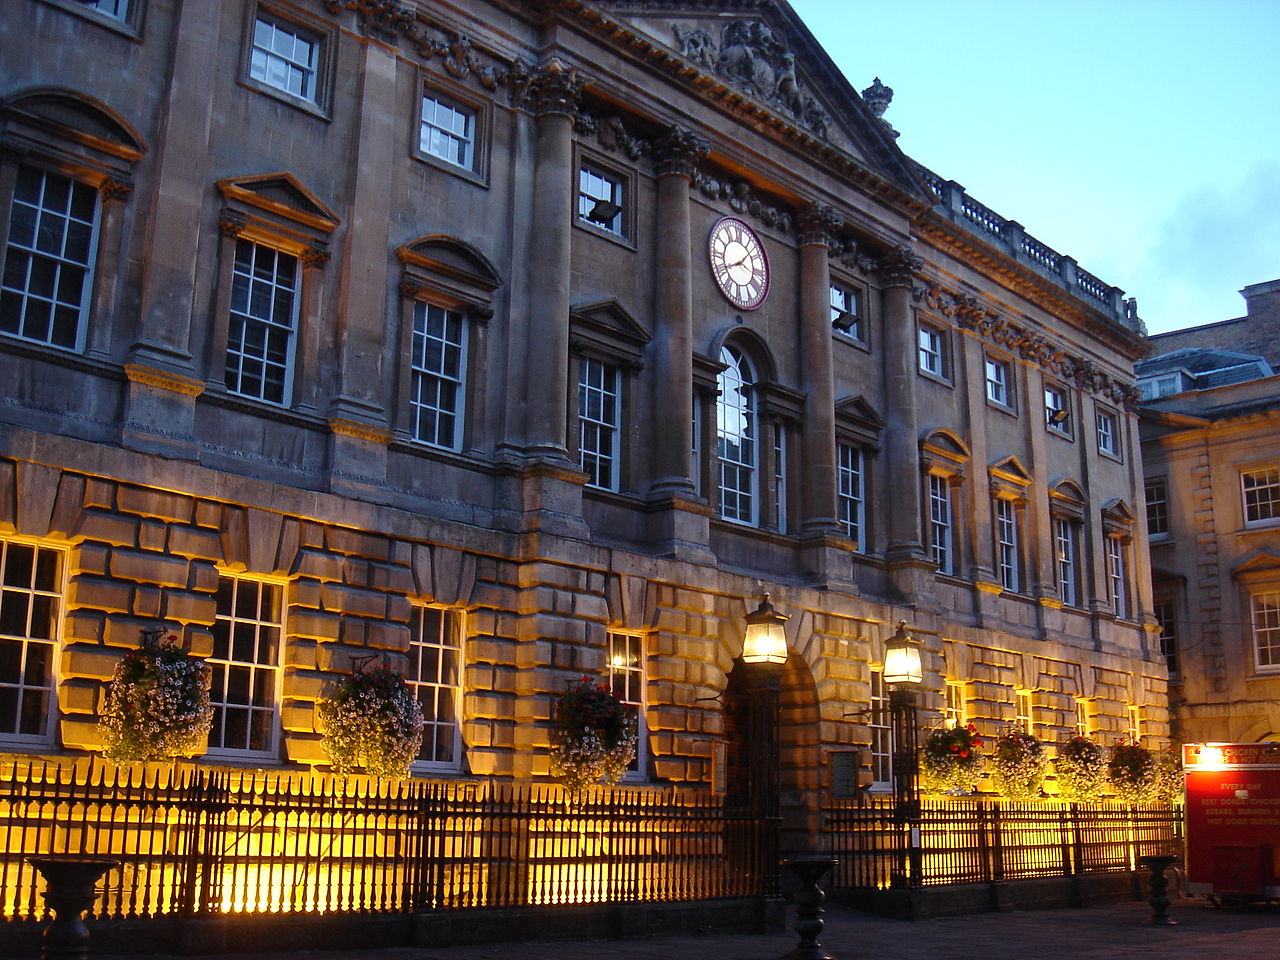 Grand 3-storey Georgian stone building at dusk. Colonnaded front topped by a pediment.